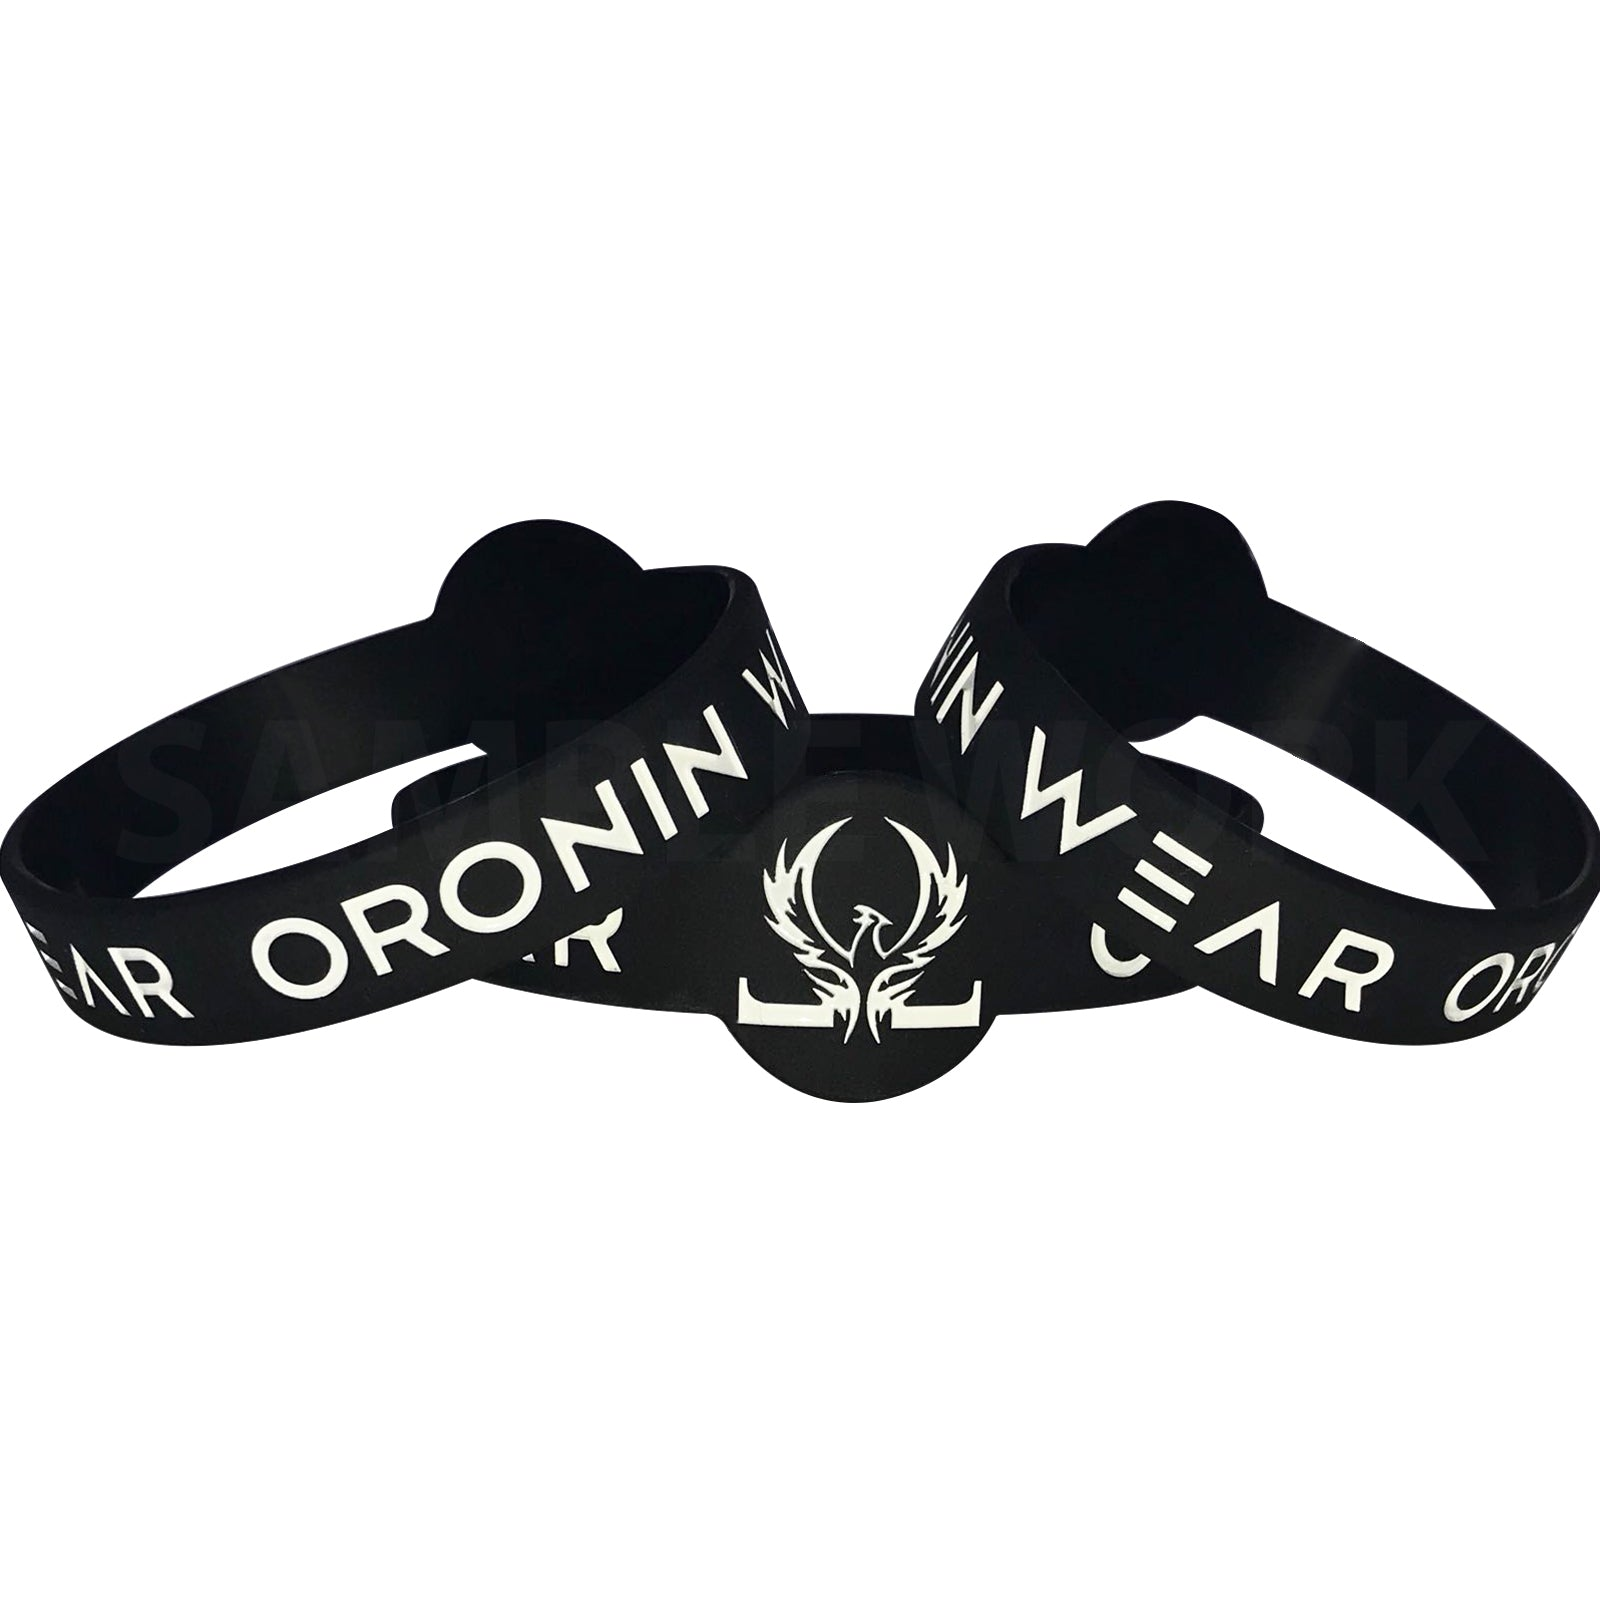 Oronin Wear Wristband - Oronin Wear Martial Arts Athletic Apparel and Supplies